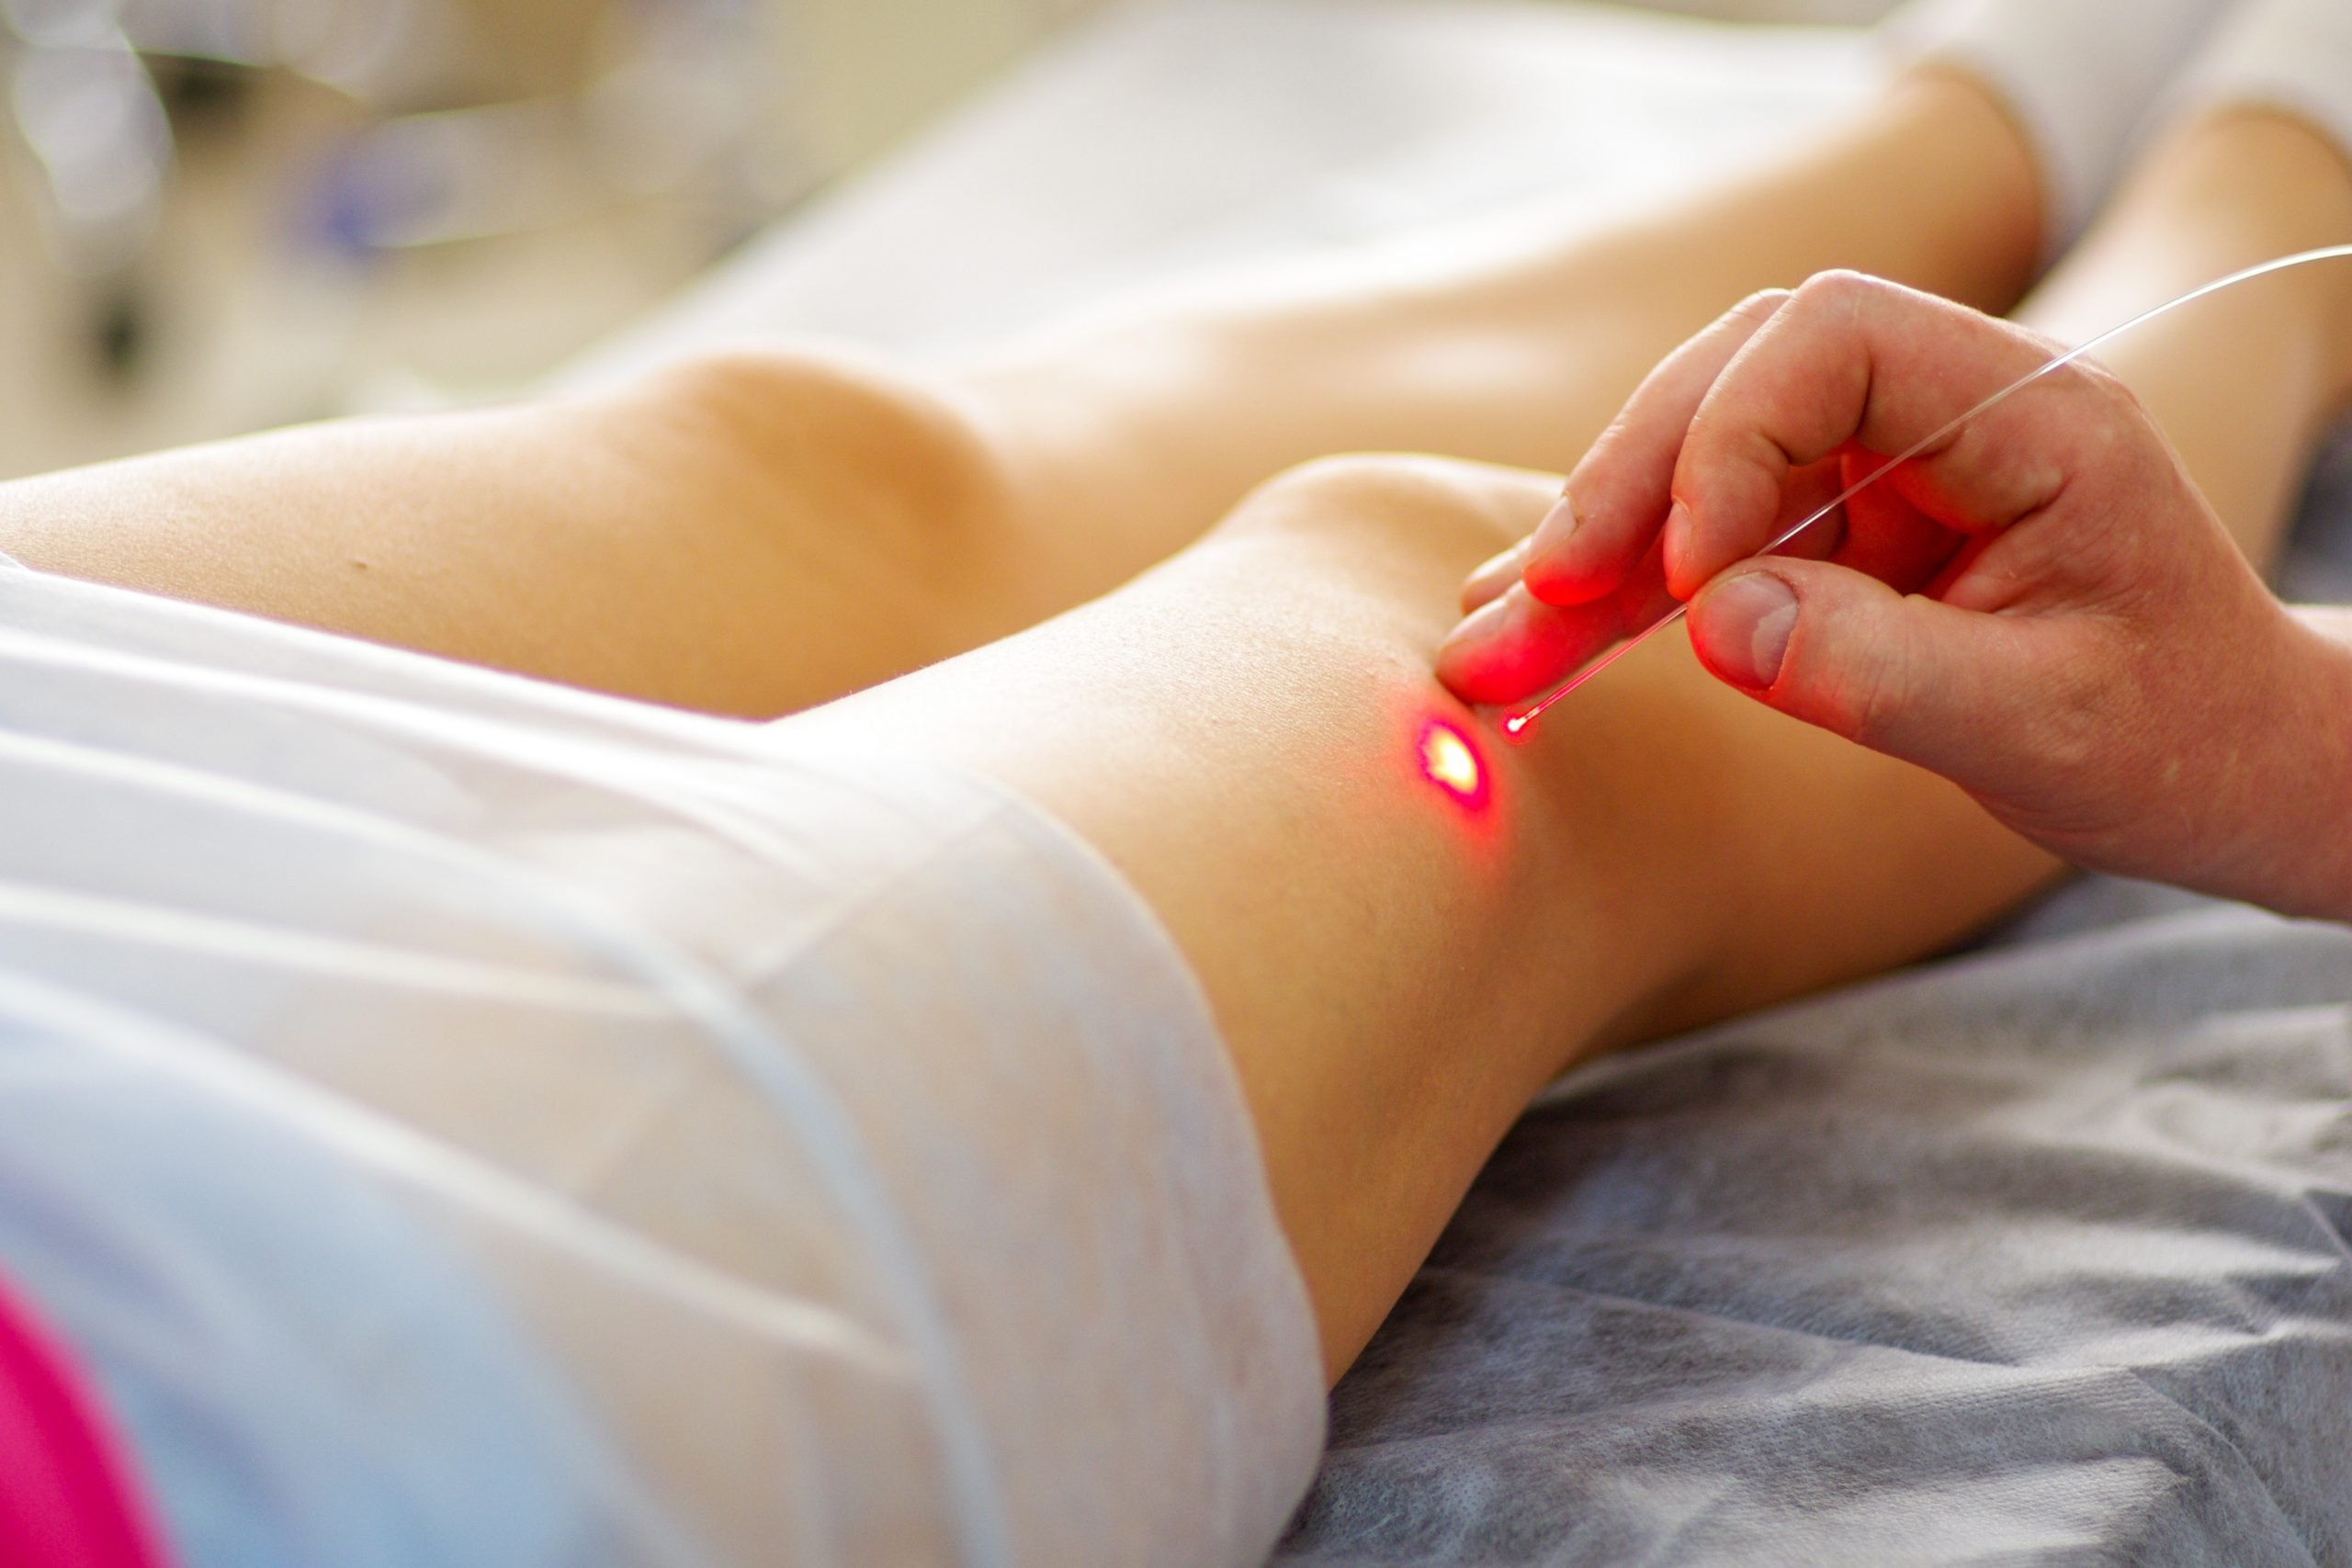 Laser Radiofrequency and sclerotherapy